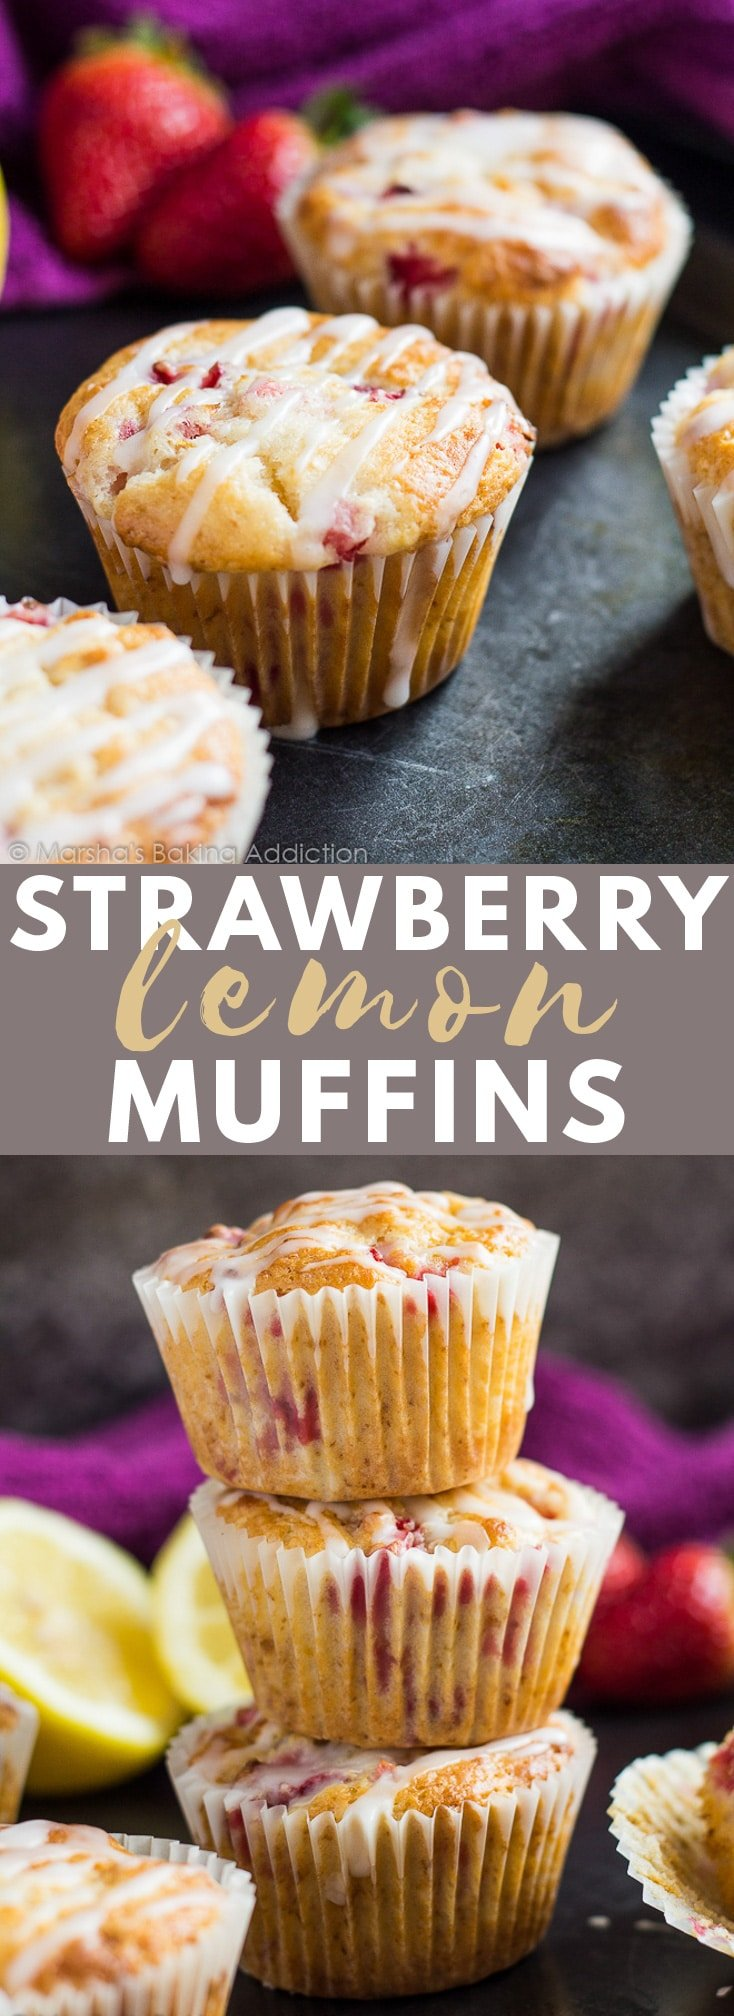 Strawberry Lemon Muffins – Deliciously moist muffins infused with lemon juice and zest, loaded with strawberries, and drizzled with a lemon glaze!